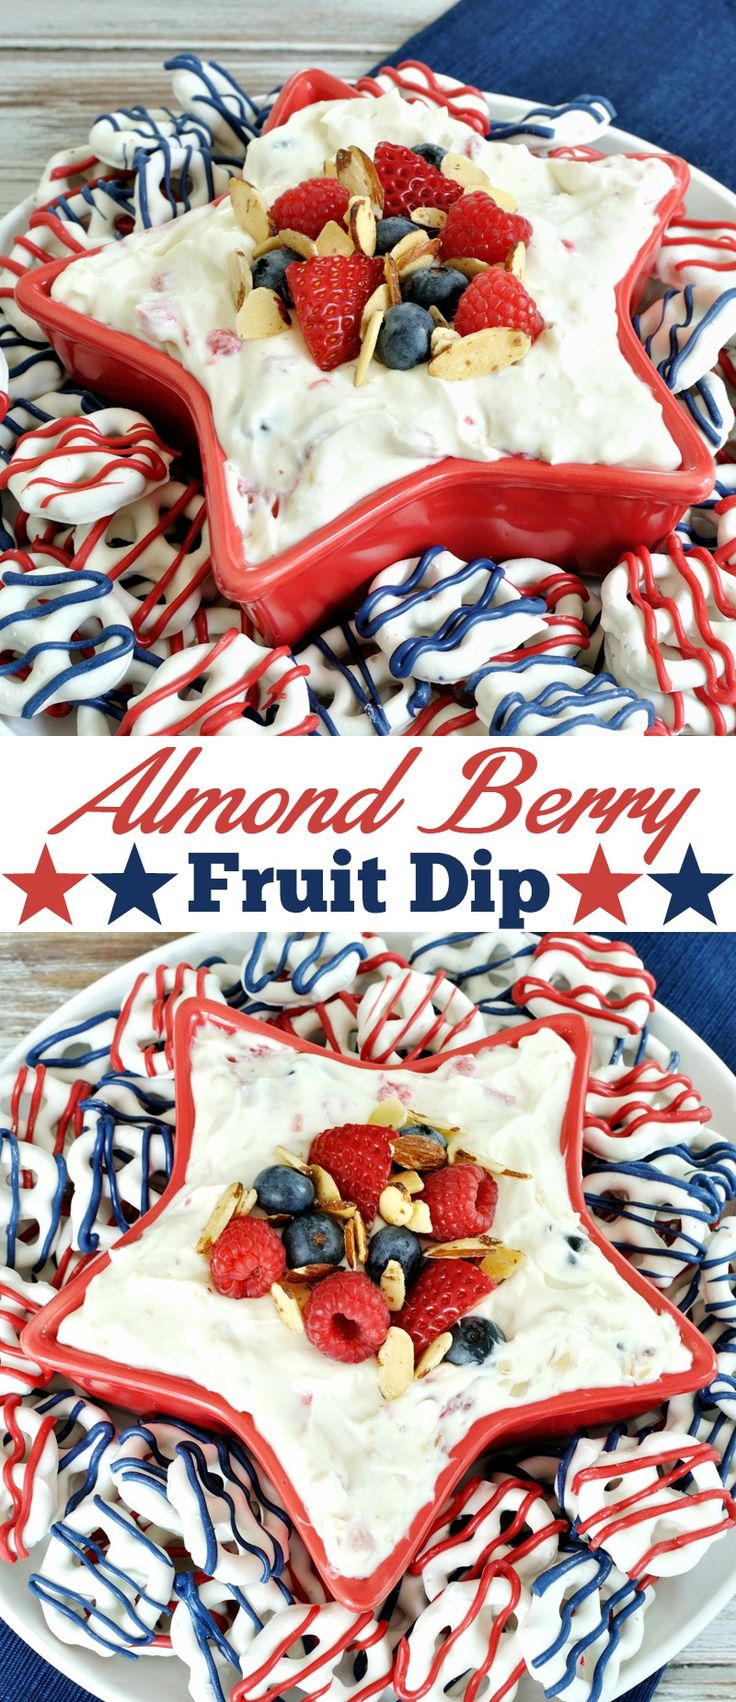 Cream cheese fruit dip recipe combines the flavor of almond with berries to create a patriotic and easy dessert for the 4th of July or Memorial Day.